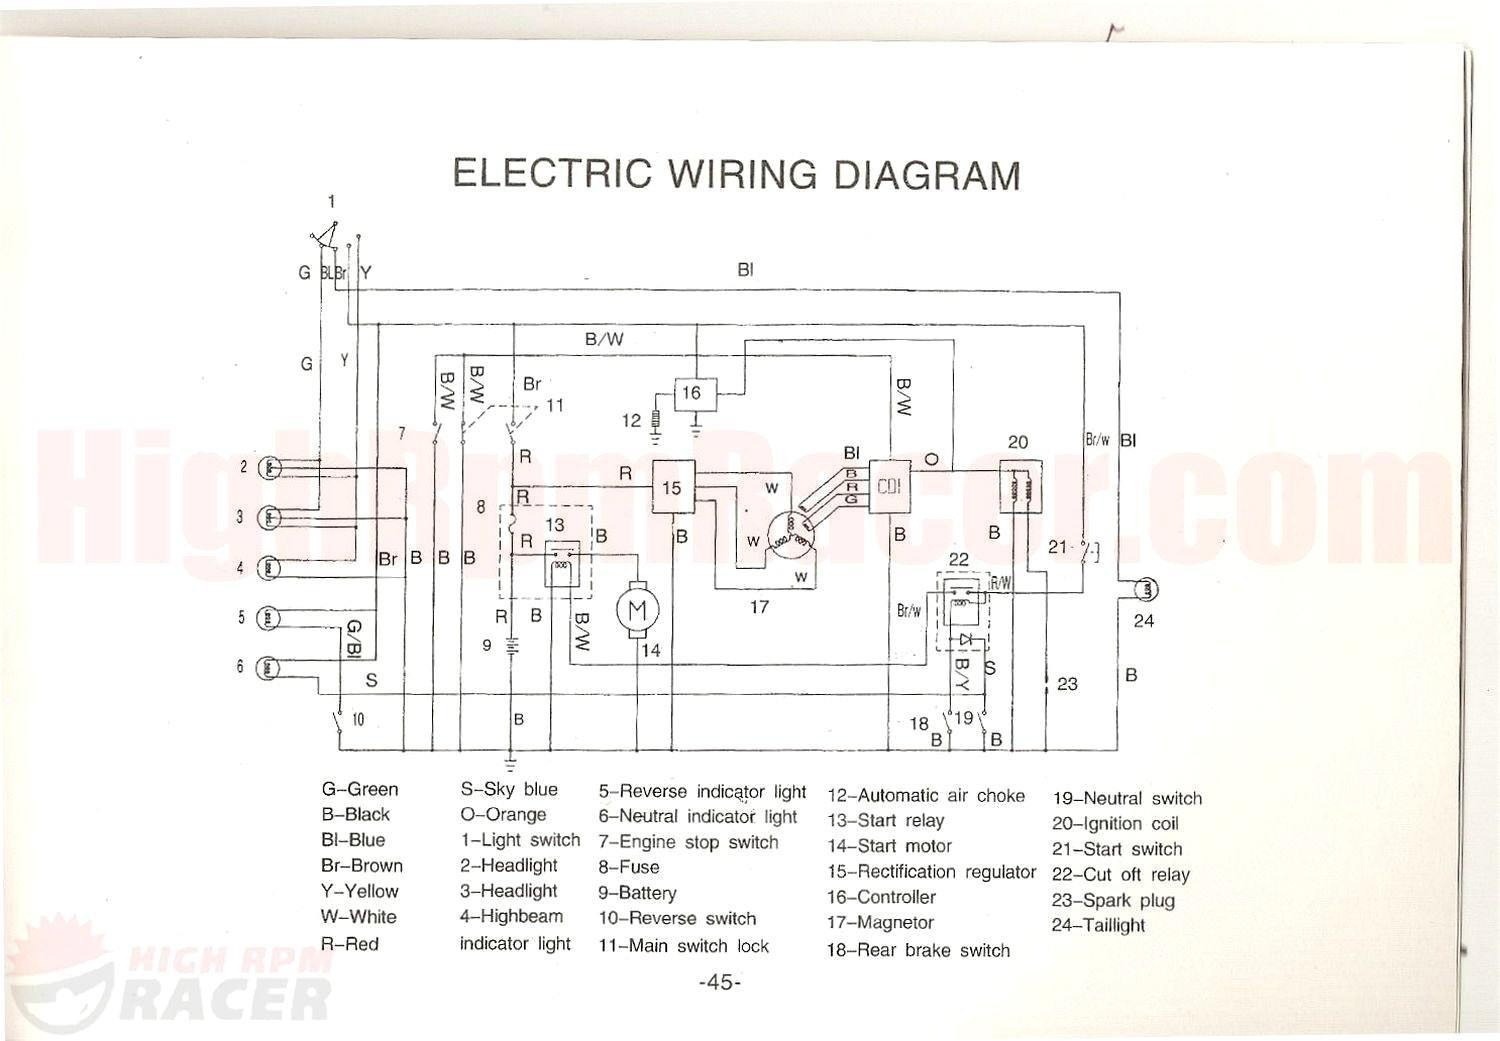 90cc Chinese Atv Wiring Diagram - 2000 Sable Fuse Block Diagram for Wiring  Diagram SchematicsWiring Diagram Schematics